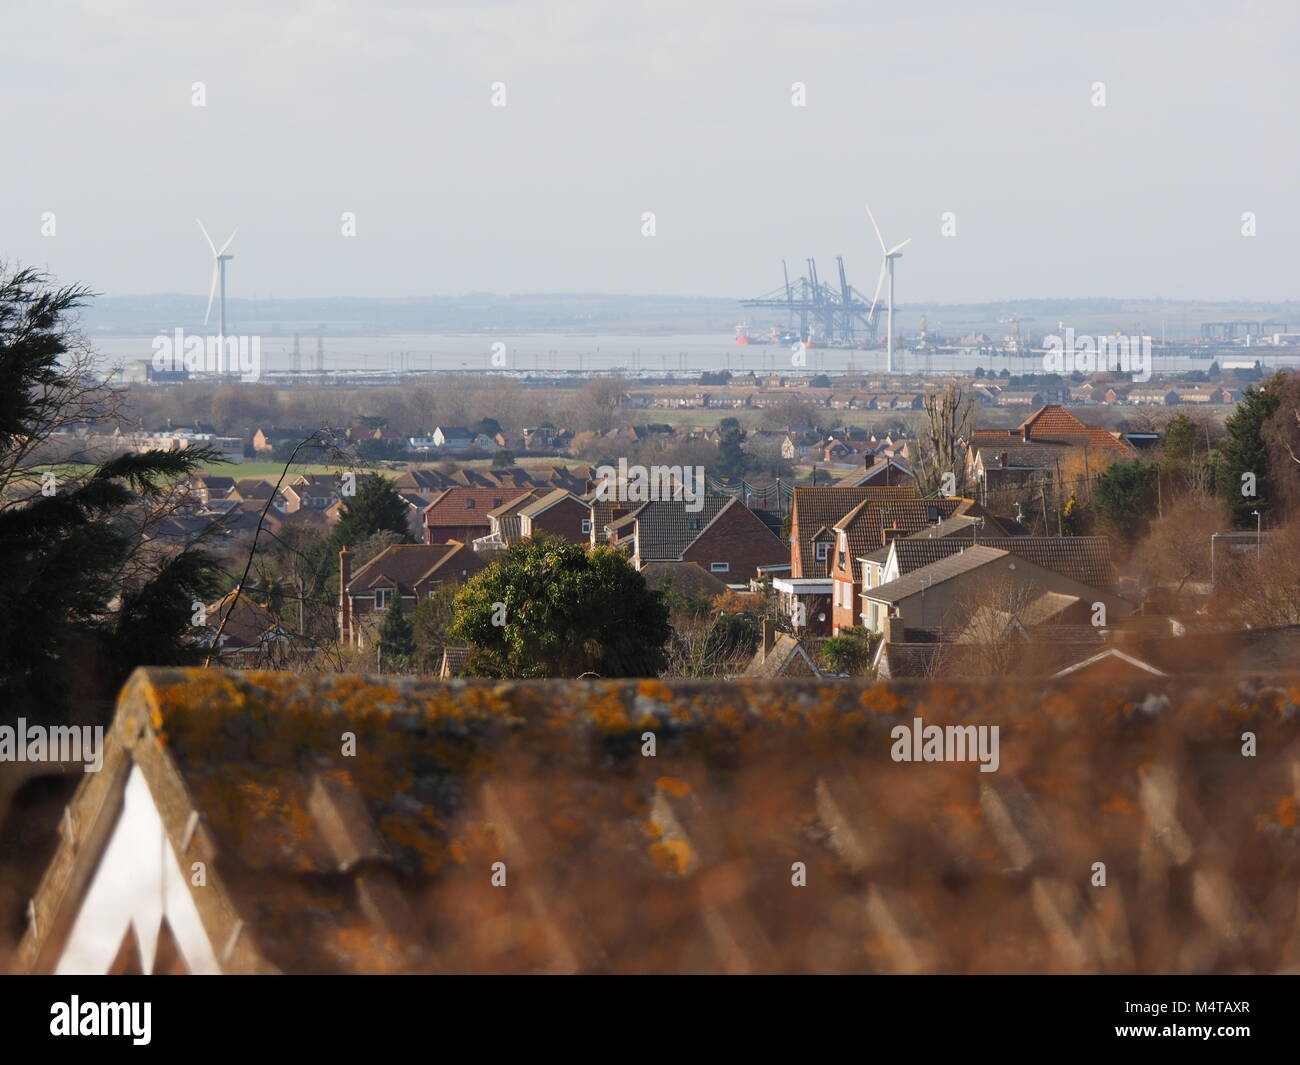 Minster on sea, Kent, UK. 18th Feb, 2018. UK Weather: another sunny and warm day in Minster on sea on the Isle of Sheppey in north Kent. Temp: 10c. View towards London Thamesport. Credit: James Bell/Alamy Live News Stock Photo